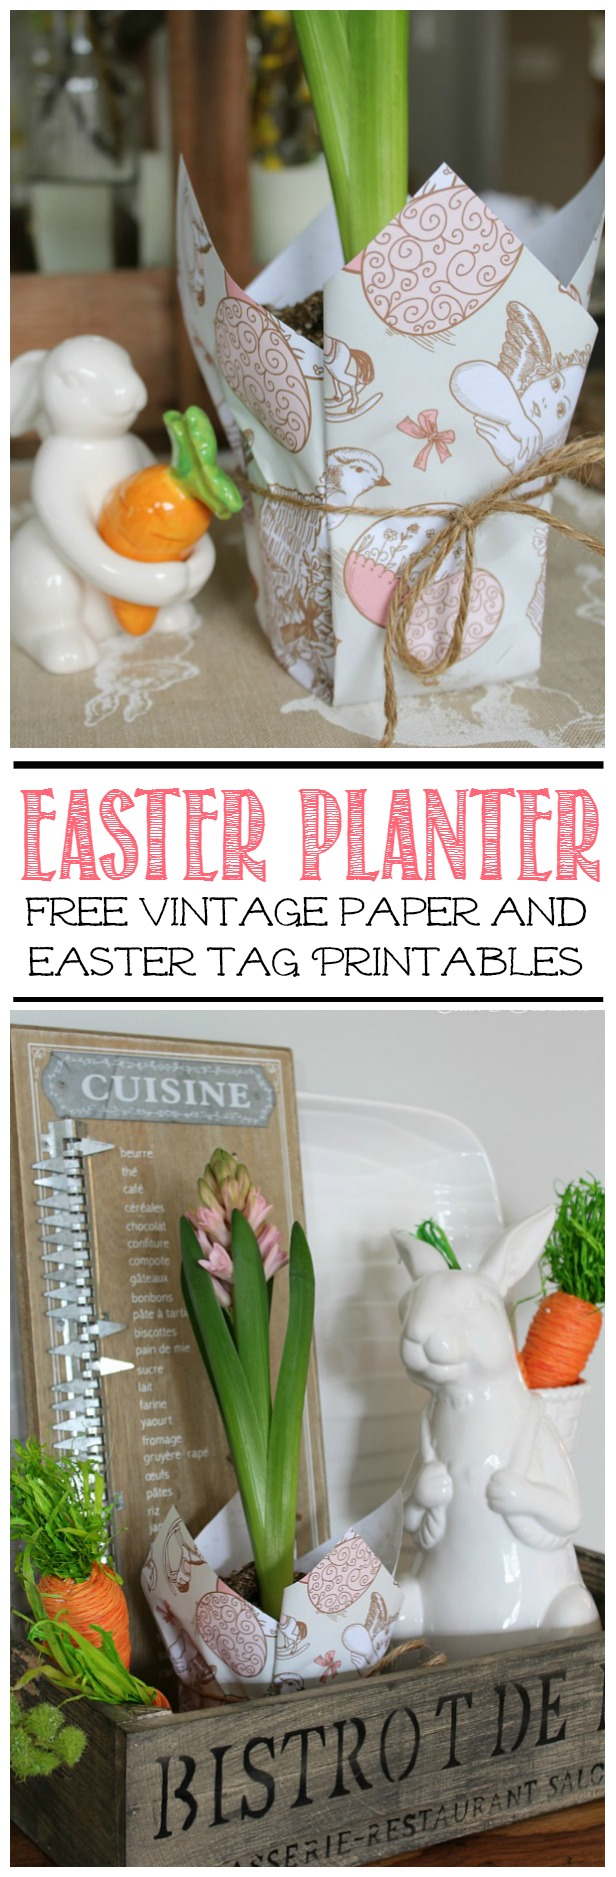 Wrap a flower pot with Eater wrapping paper for inexpensive Easter decor or a cute Easter hostess gift. Free printable vintage inspired paper and Easter gift tags included.